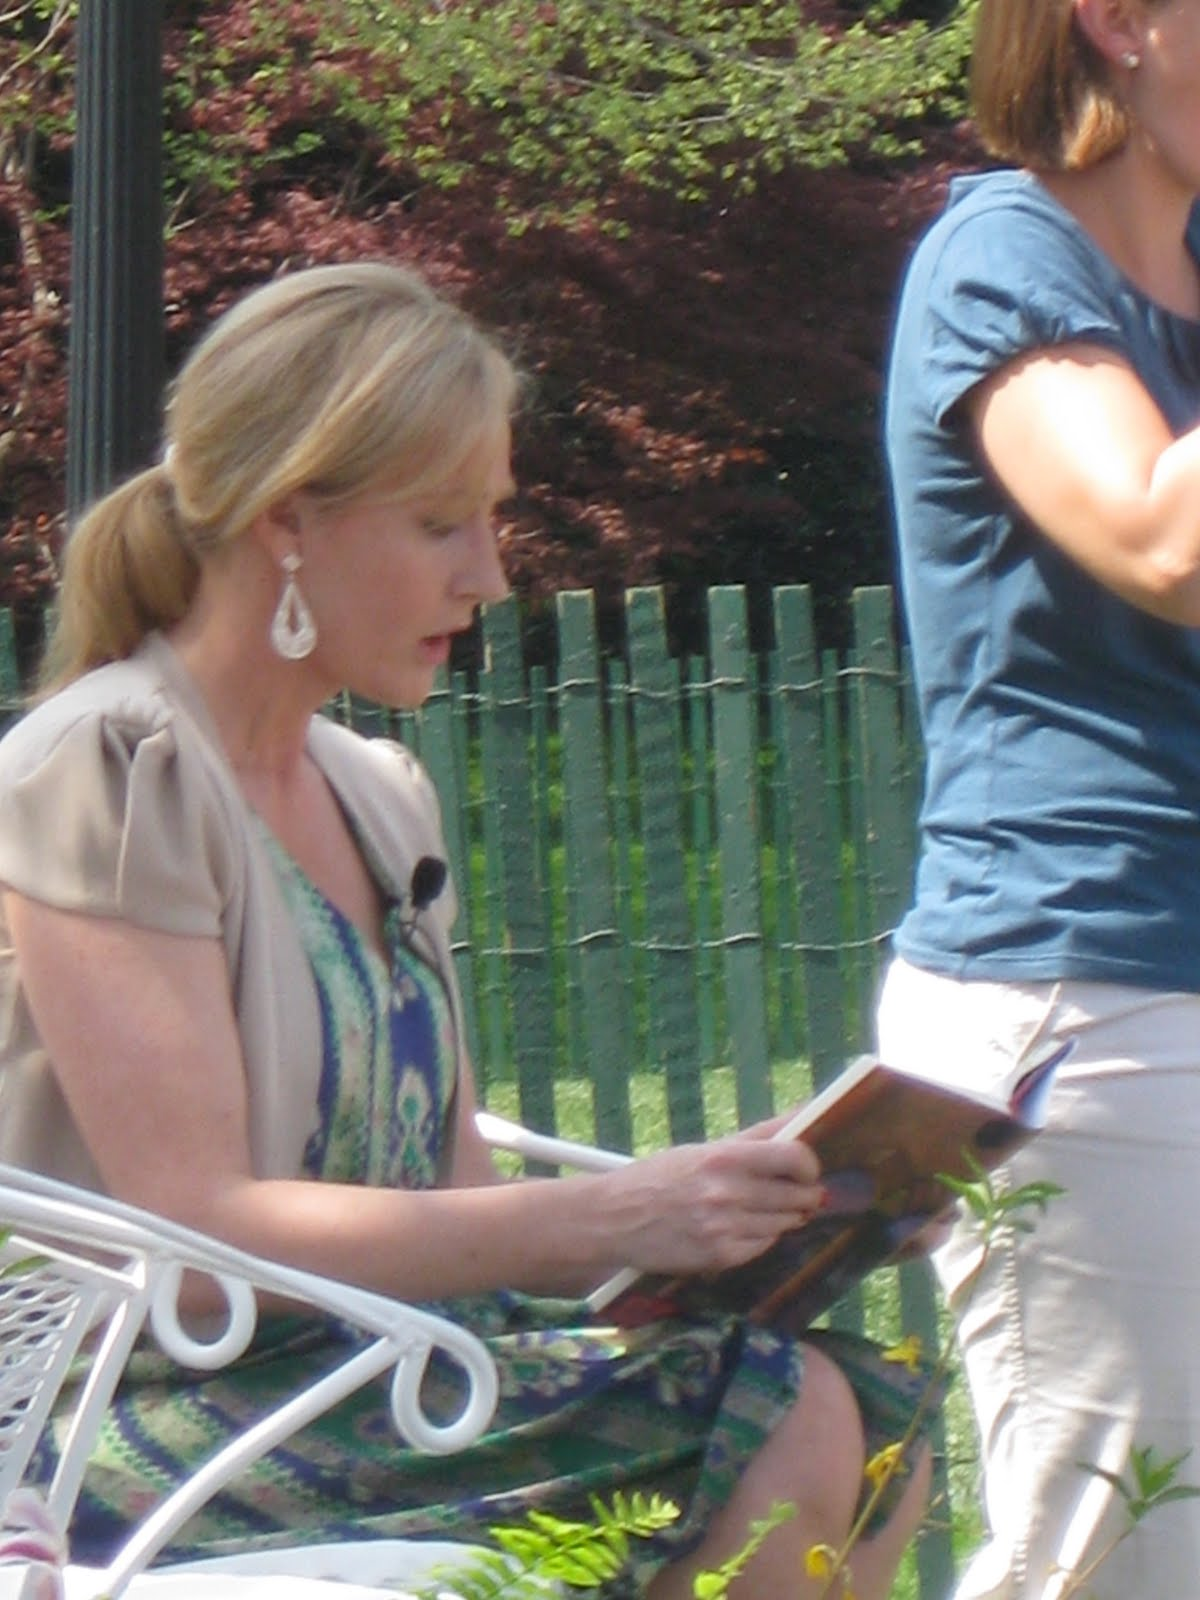 White house apron